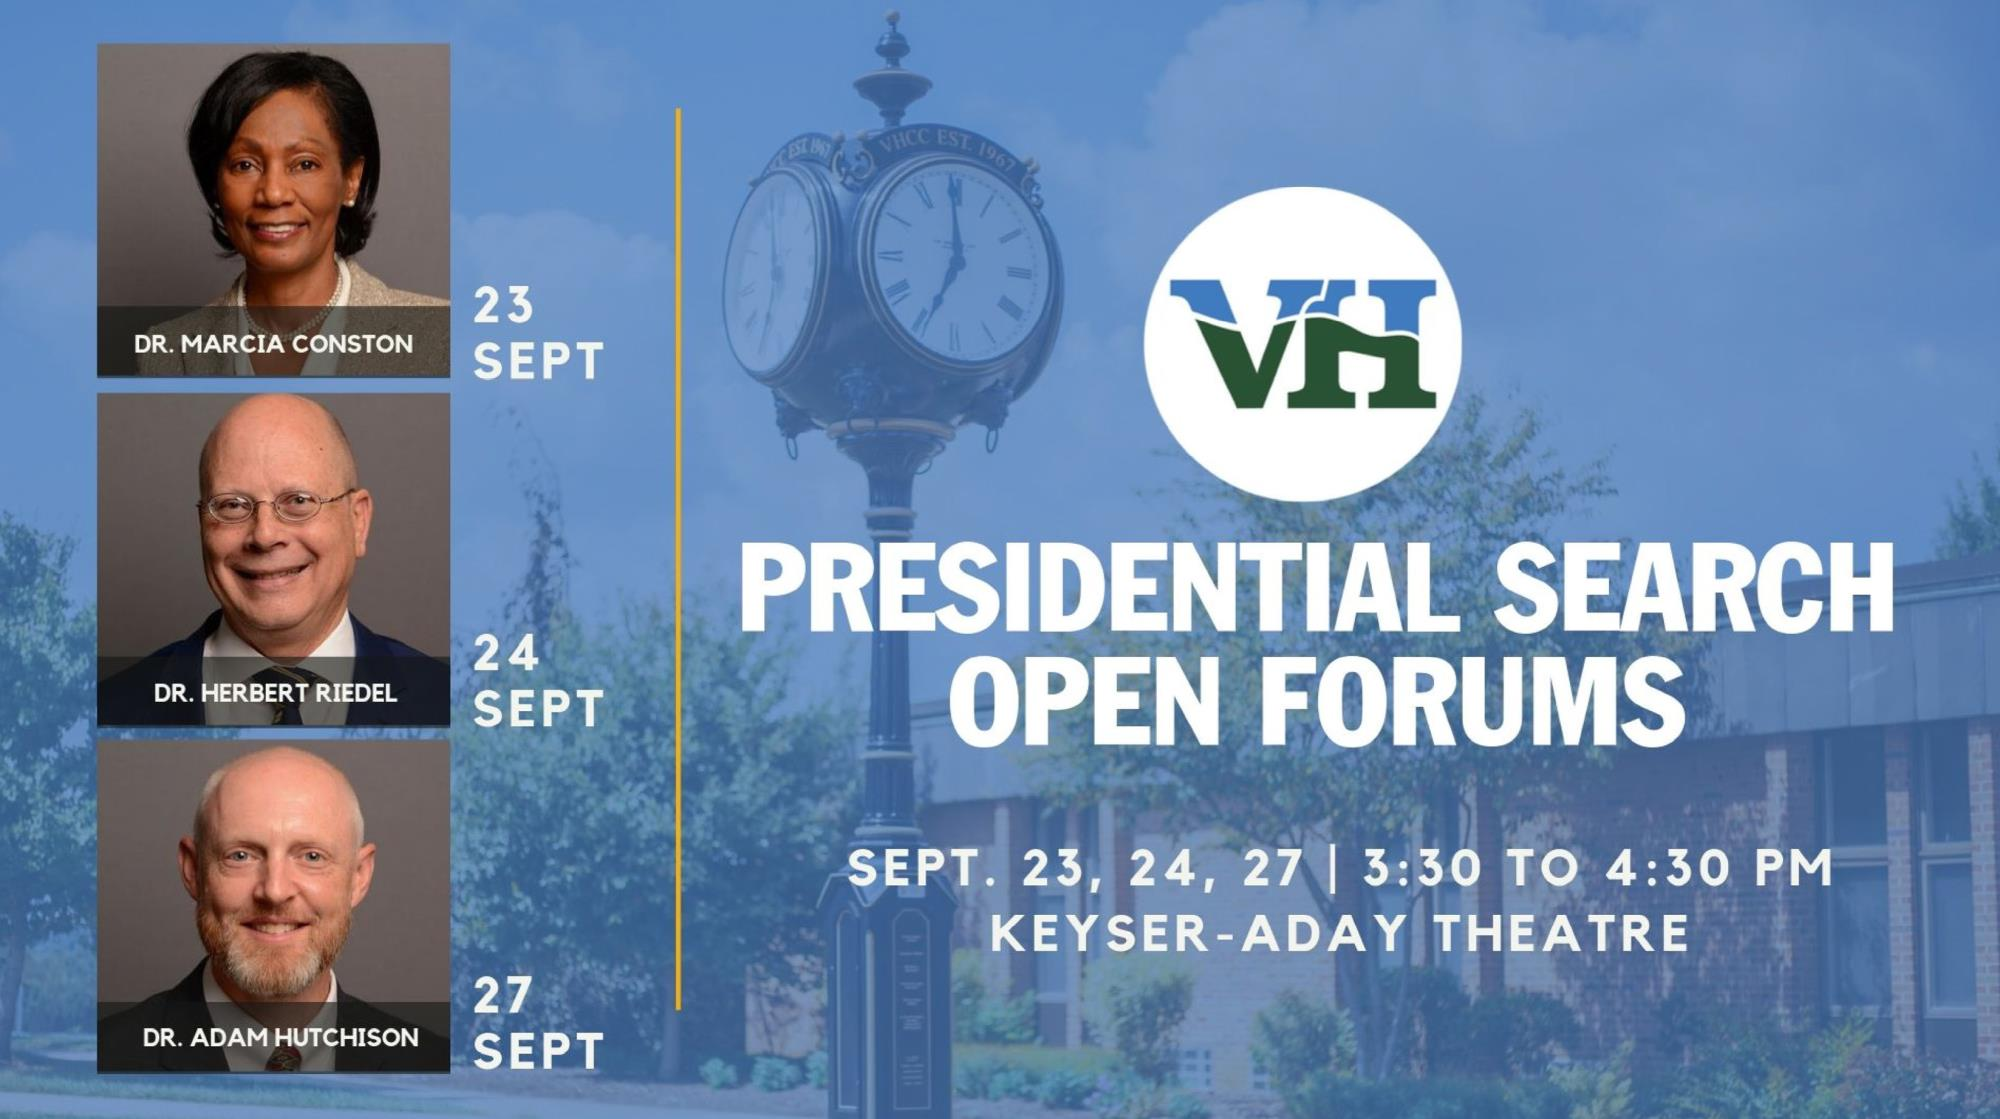 Presidential Candidates Open Forum Schedule